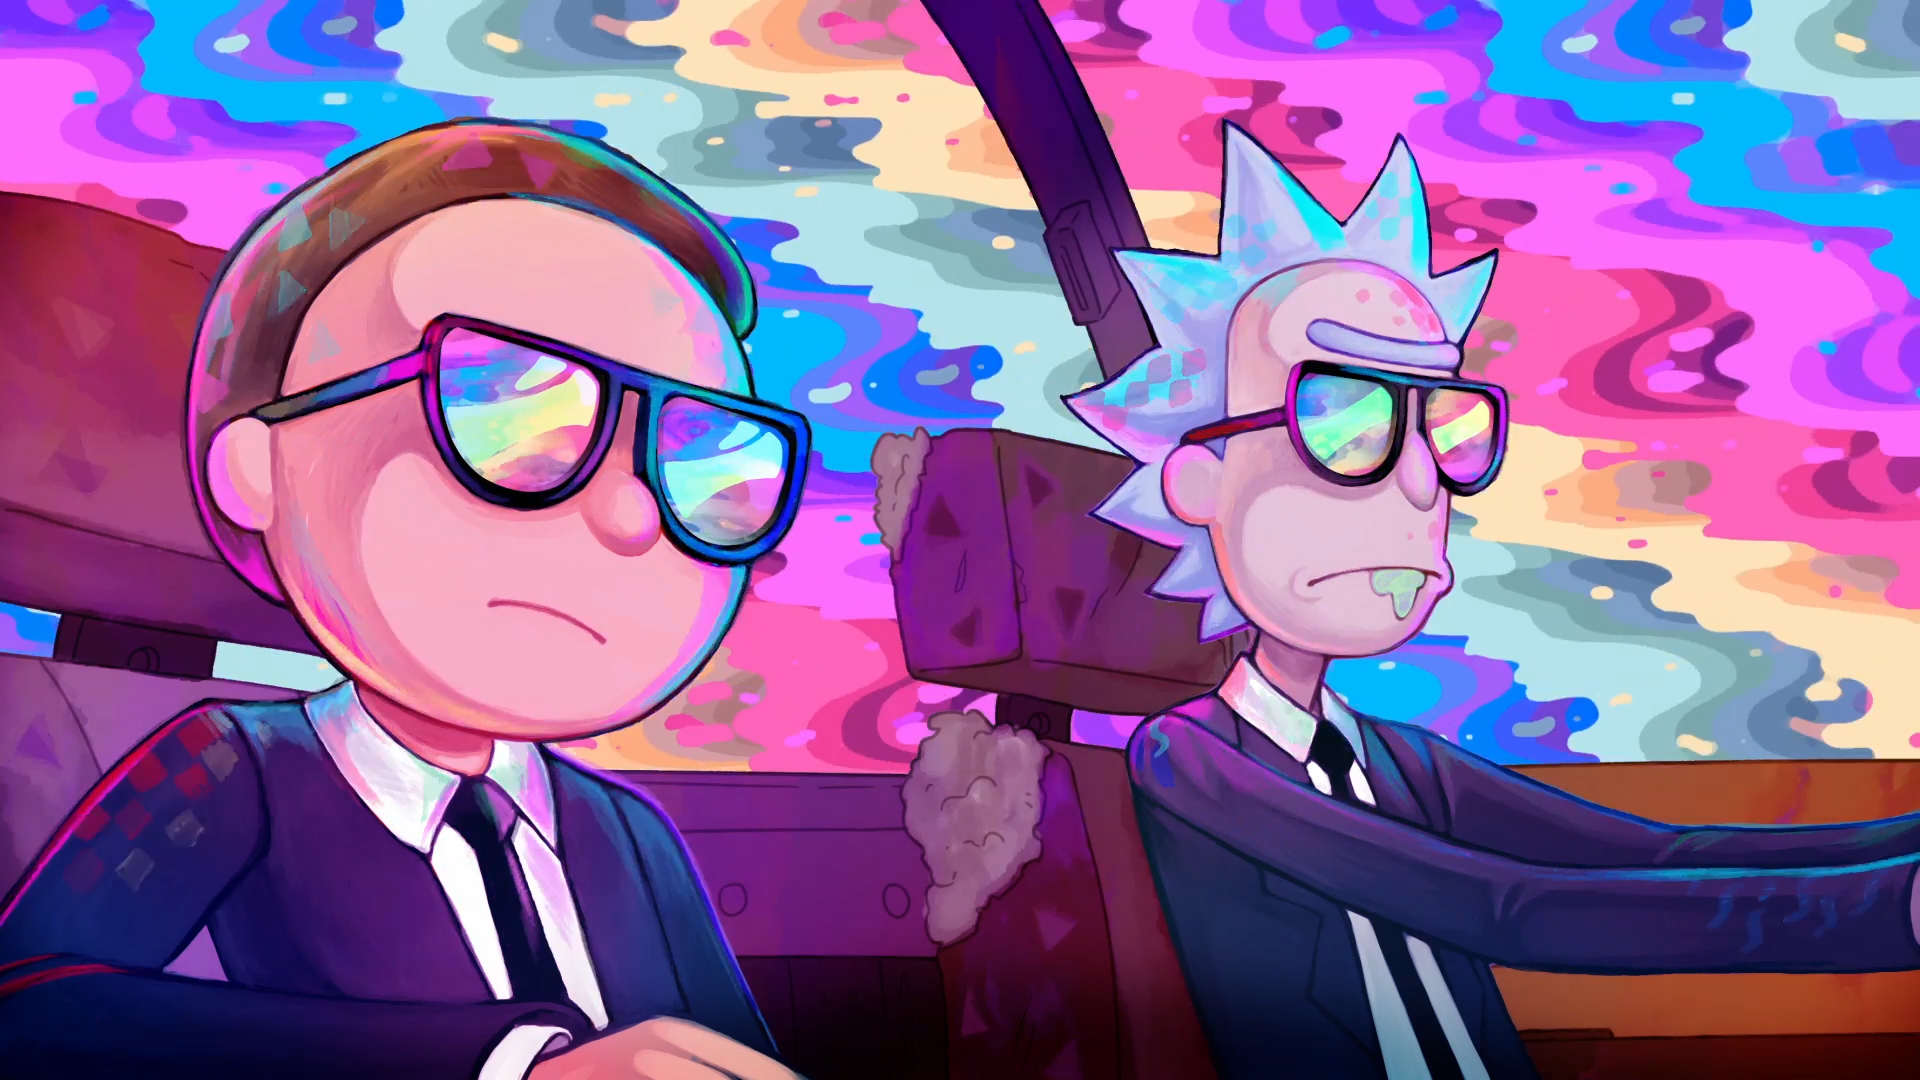 Rick and Morty Season 4 Episode 6 Release Date and Time